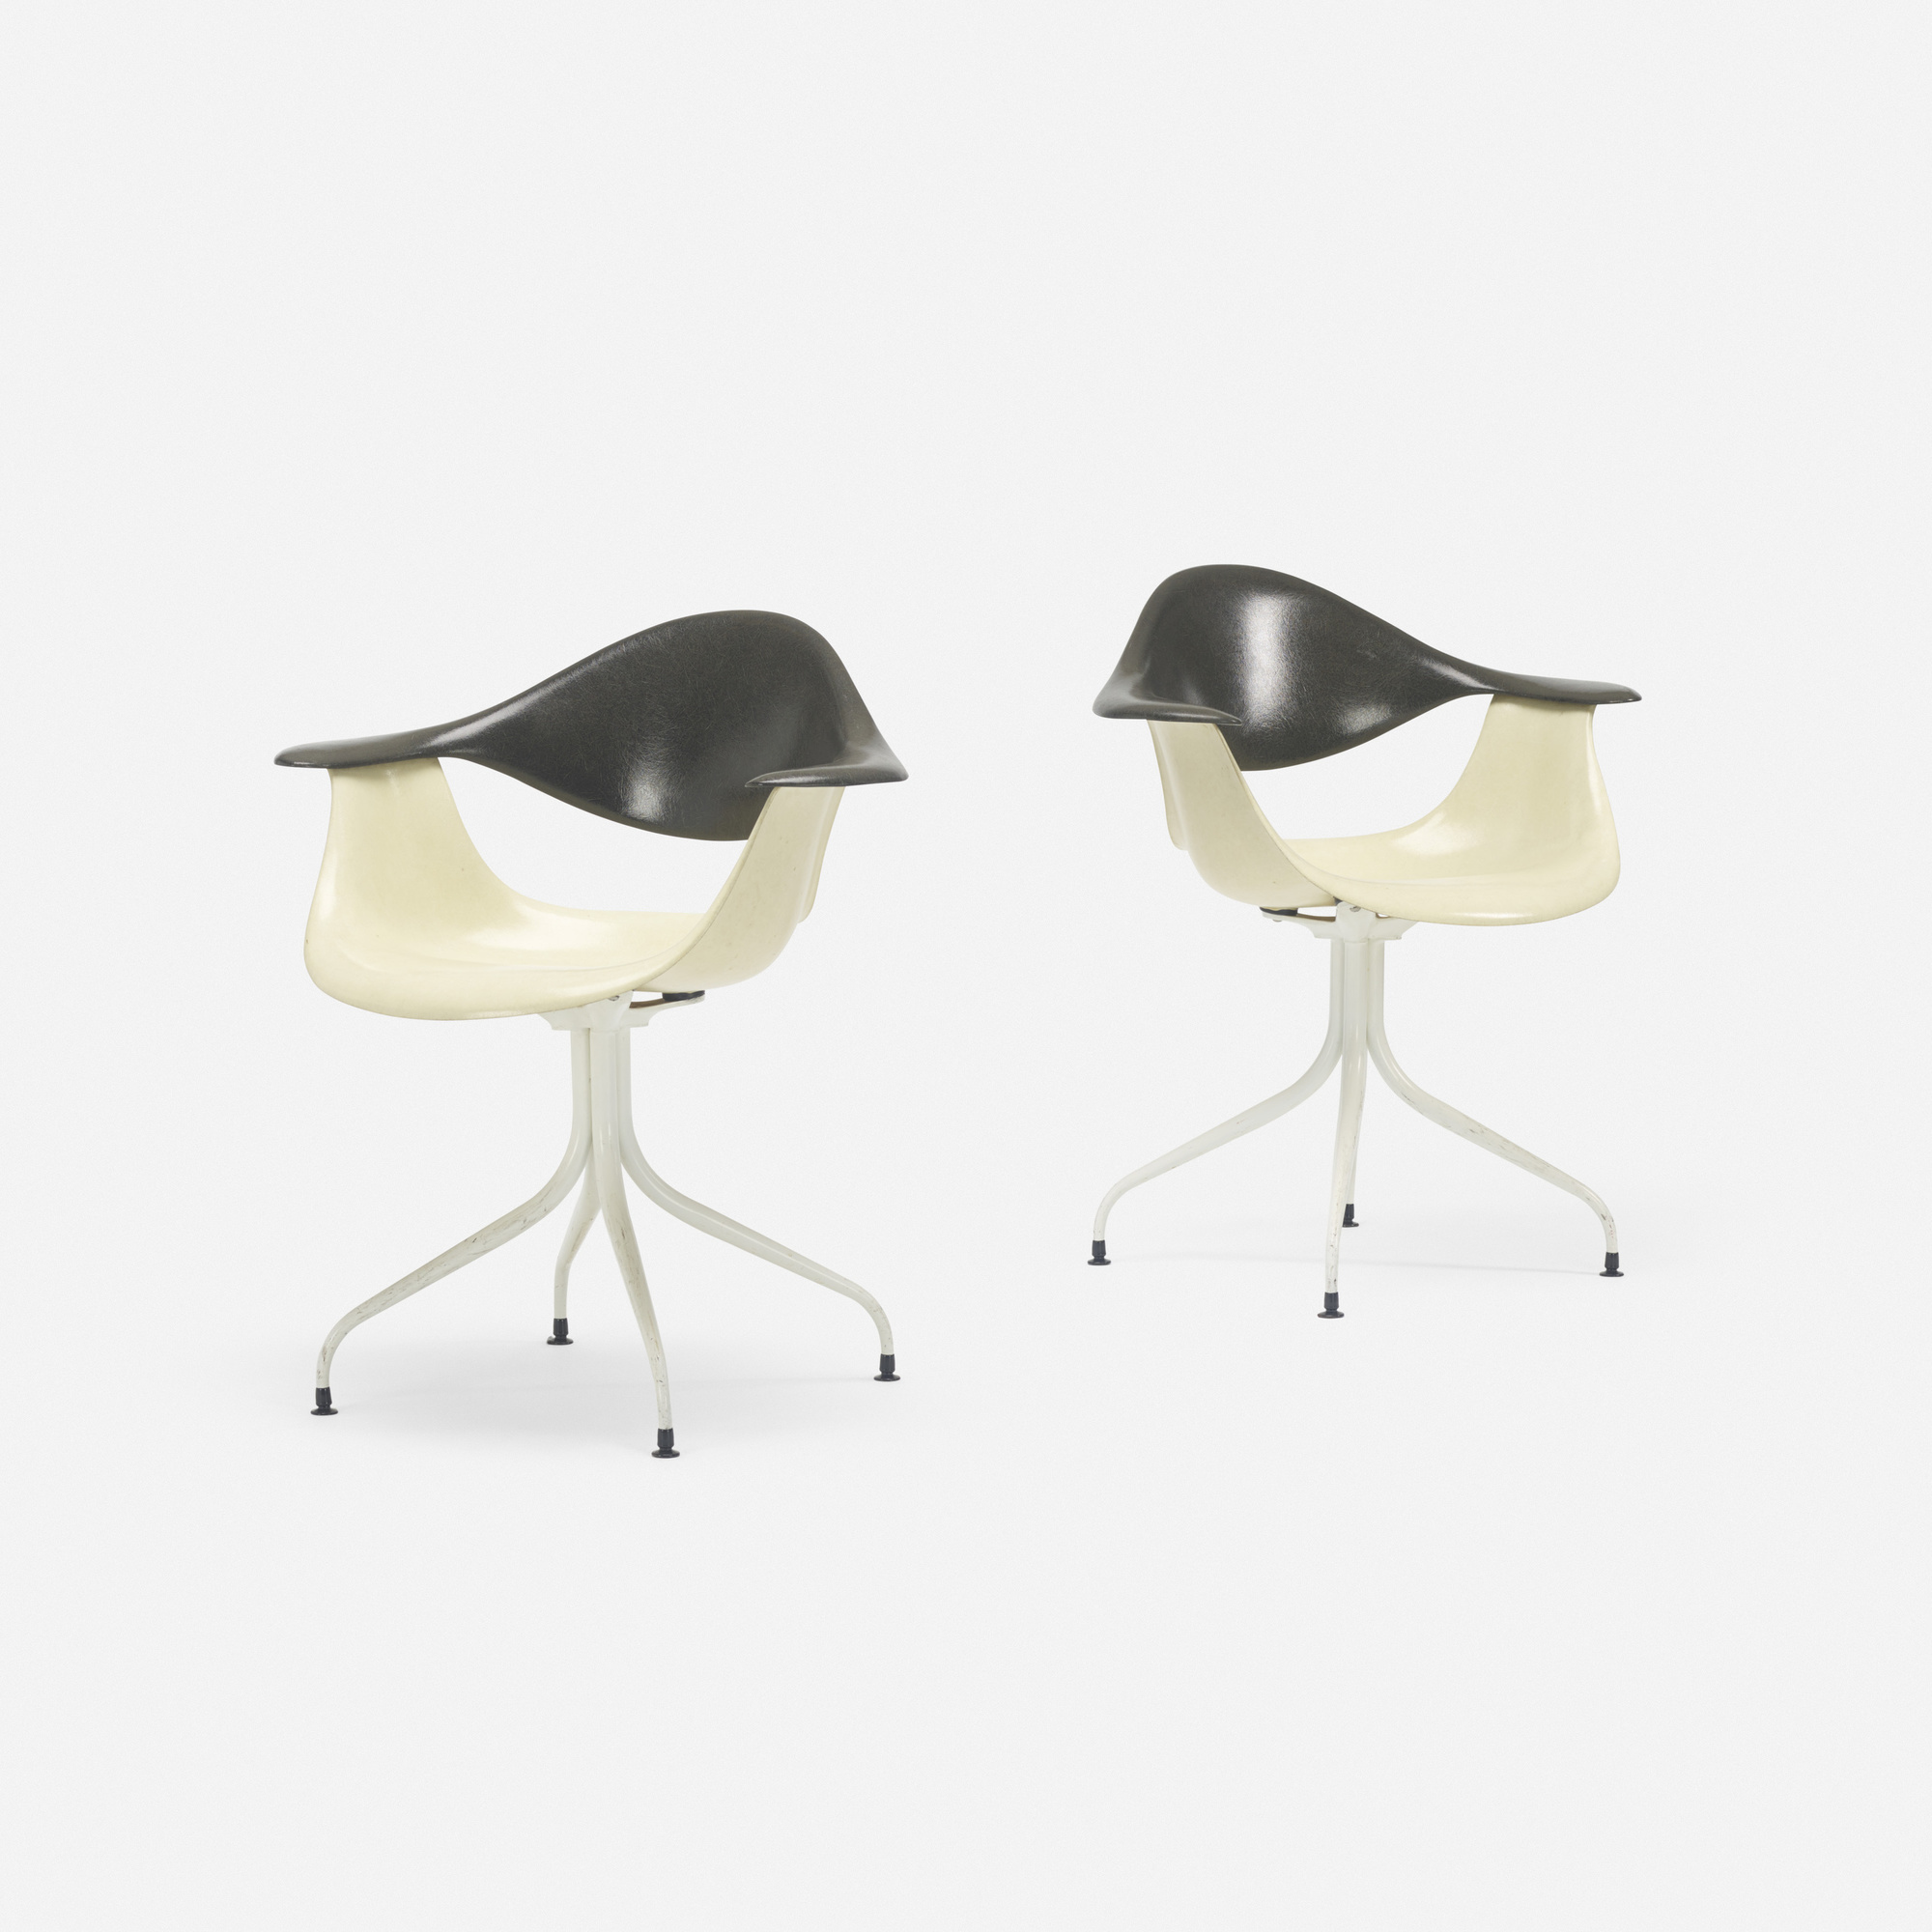 417: George Nelson & Associates / Swaged Leg chairs model MAF, pair (1 of 2)